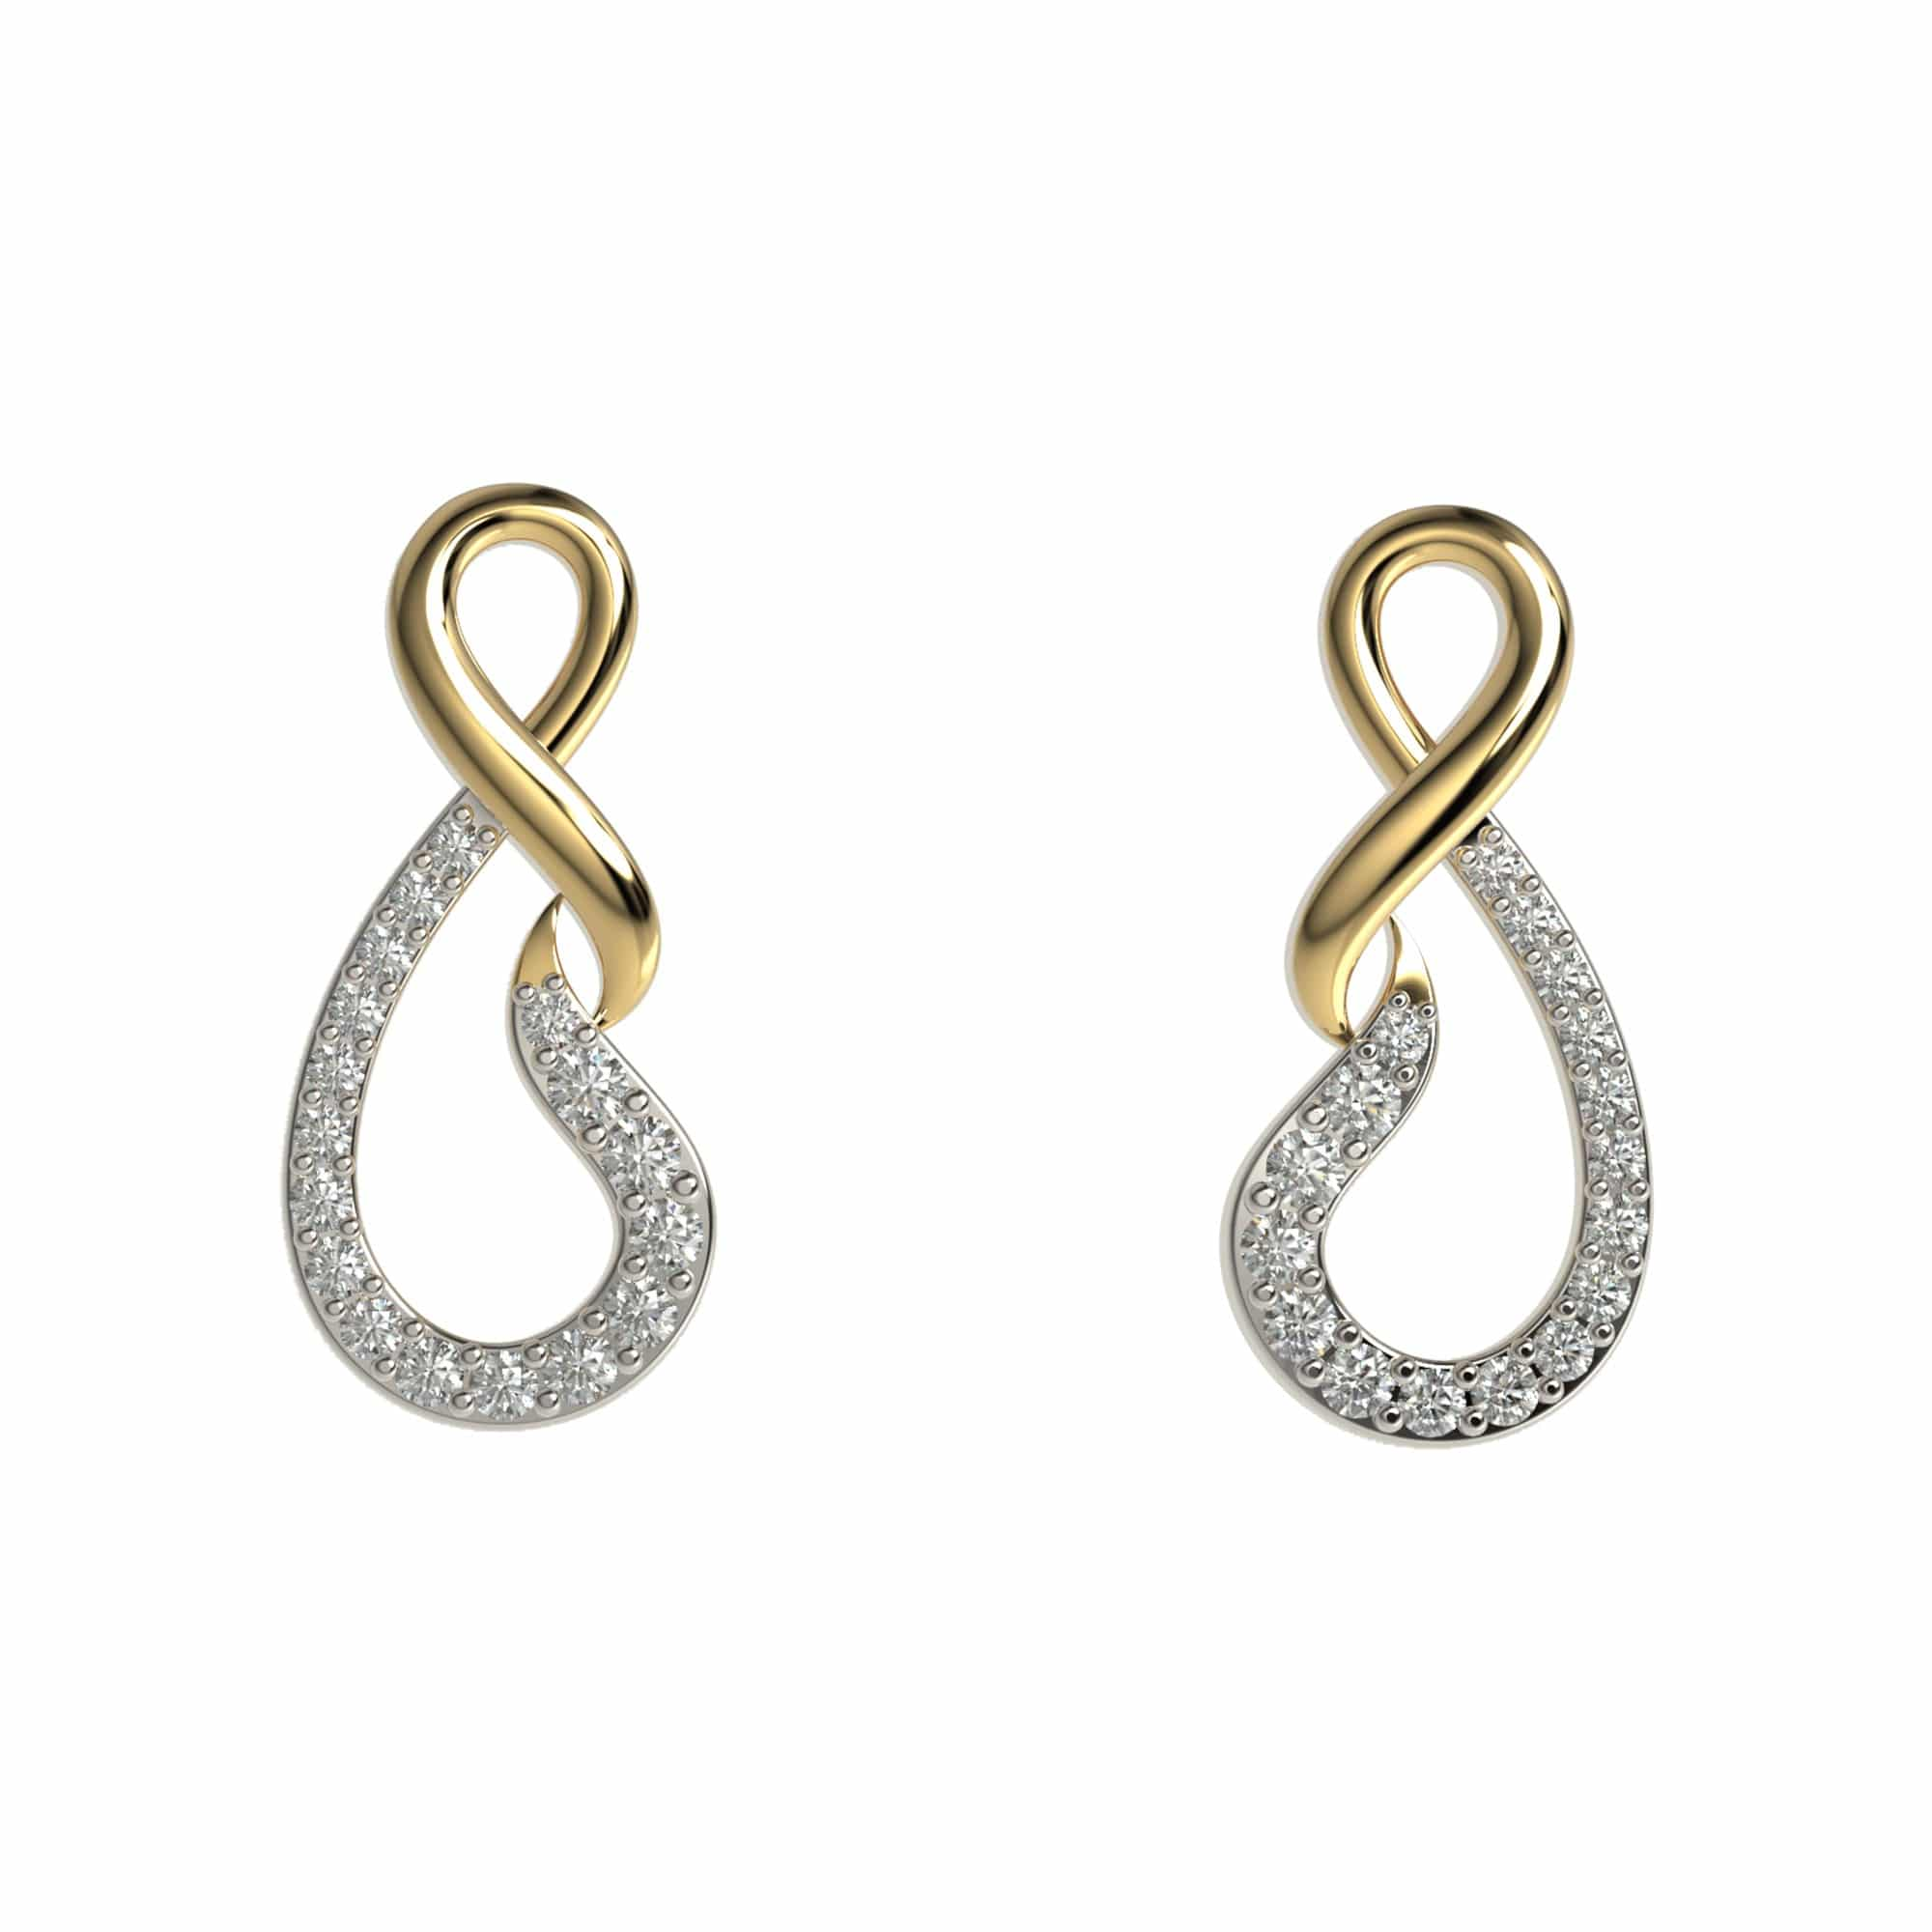 Modern Infinity Earrings